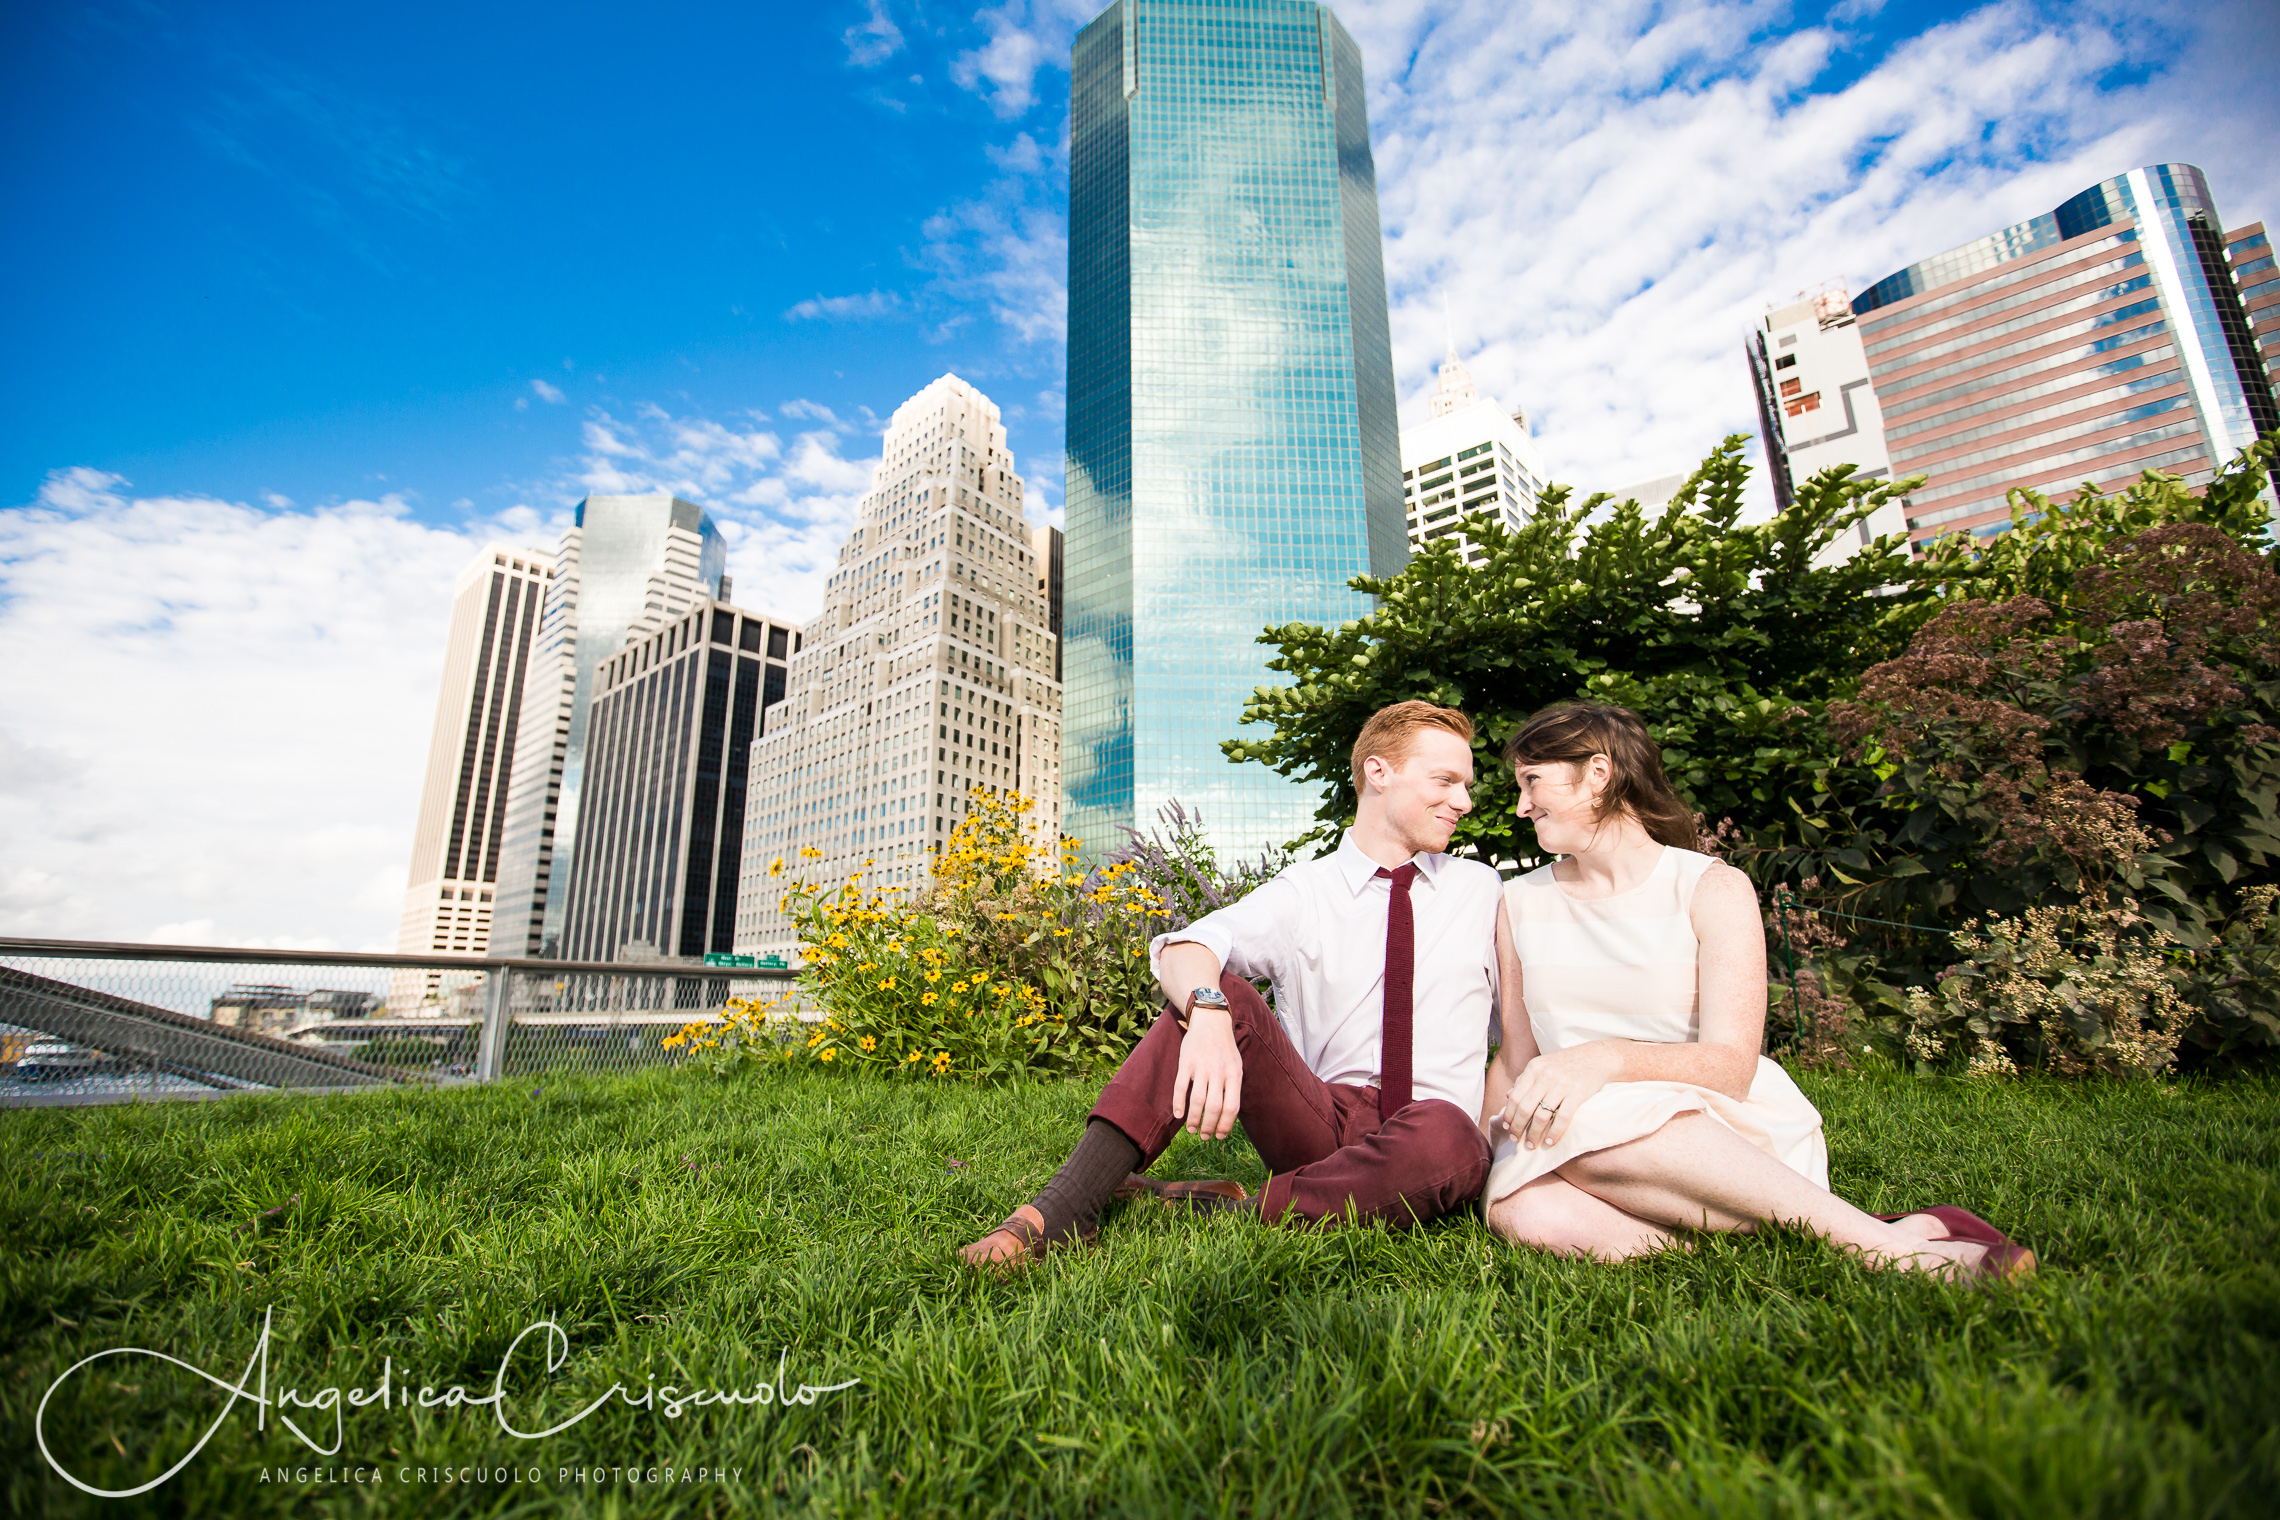 NYC Engagement photos in South Street Seaport City Skyline